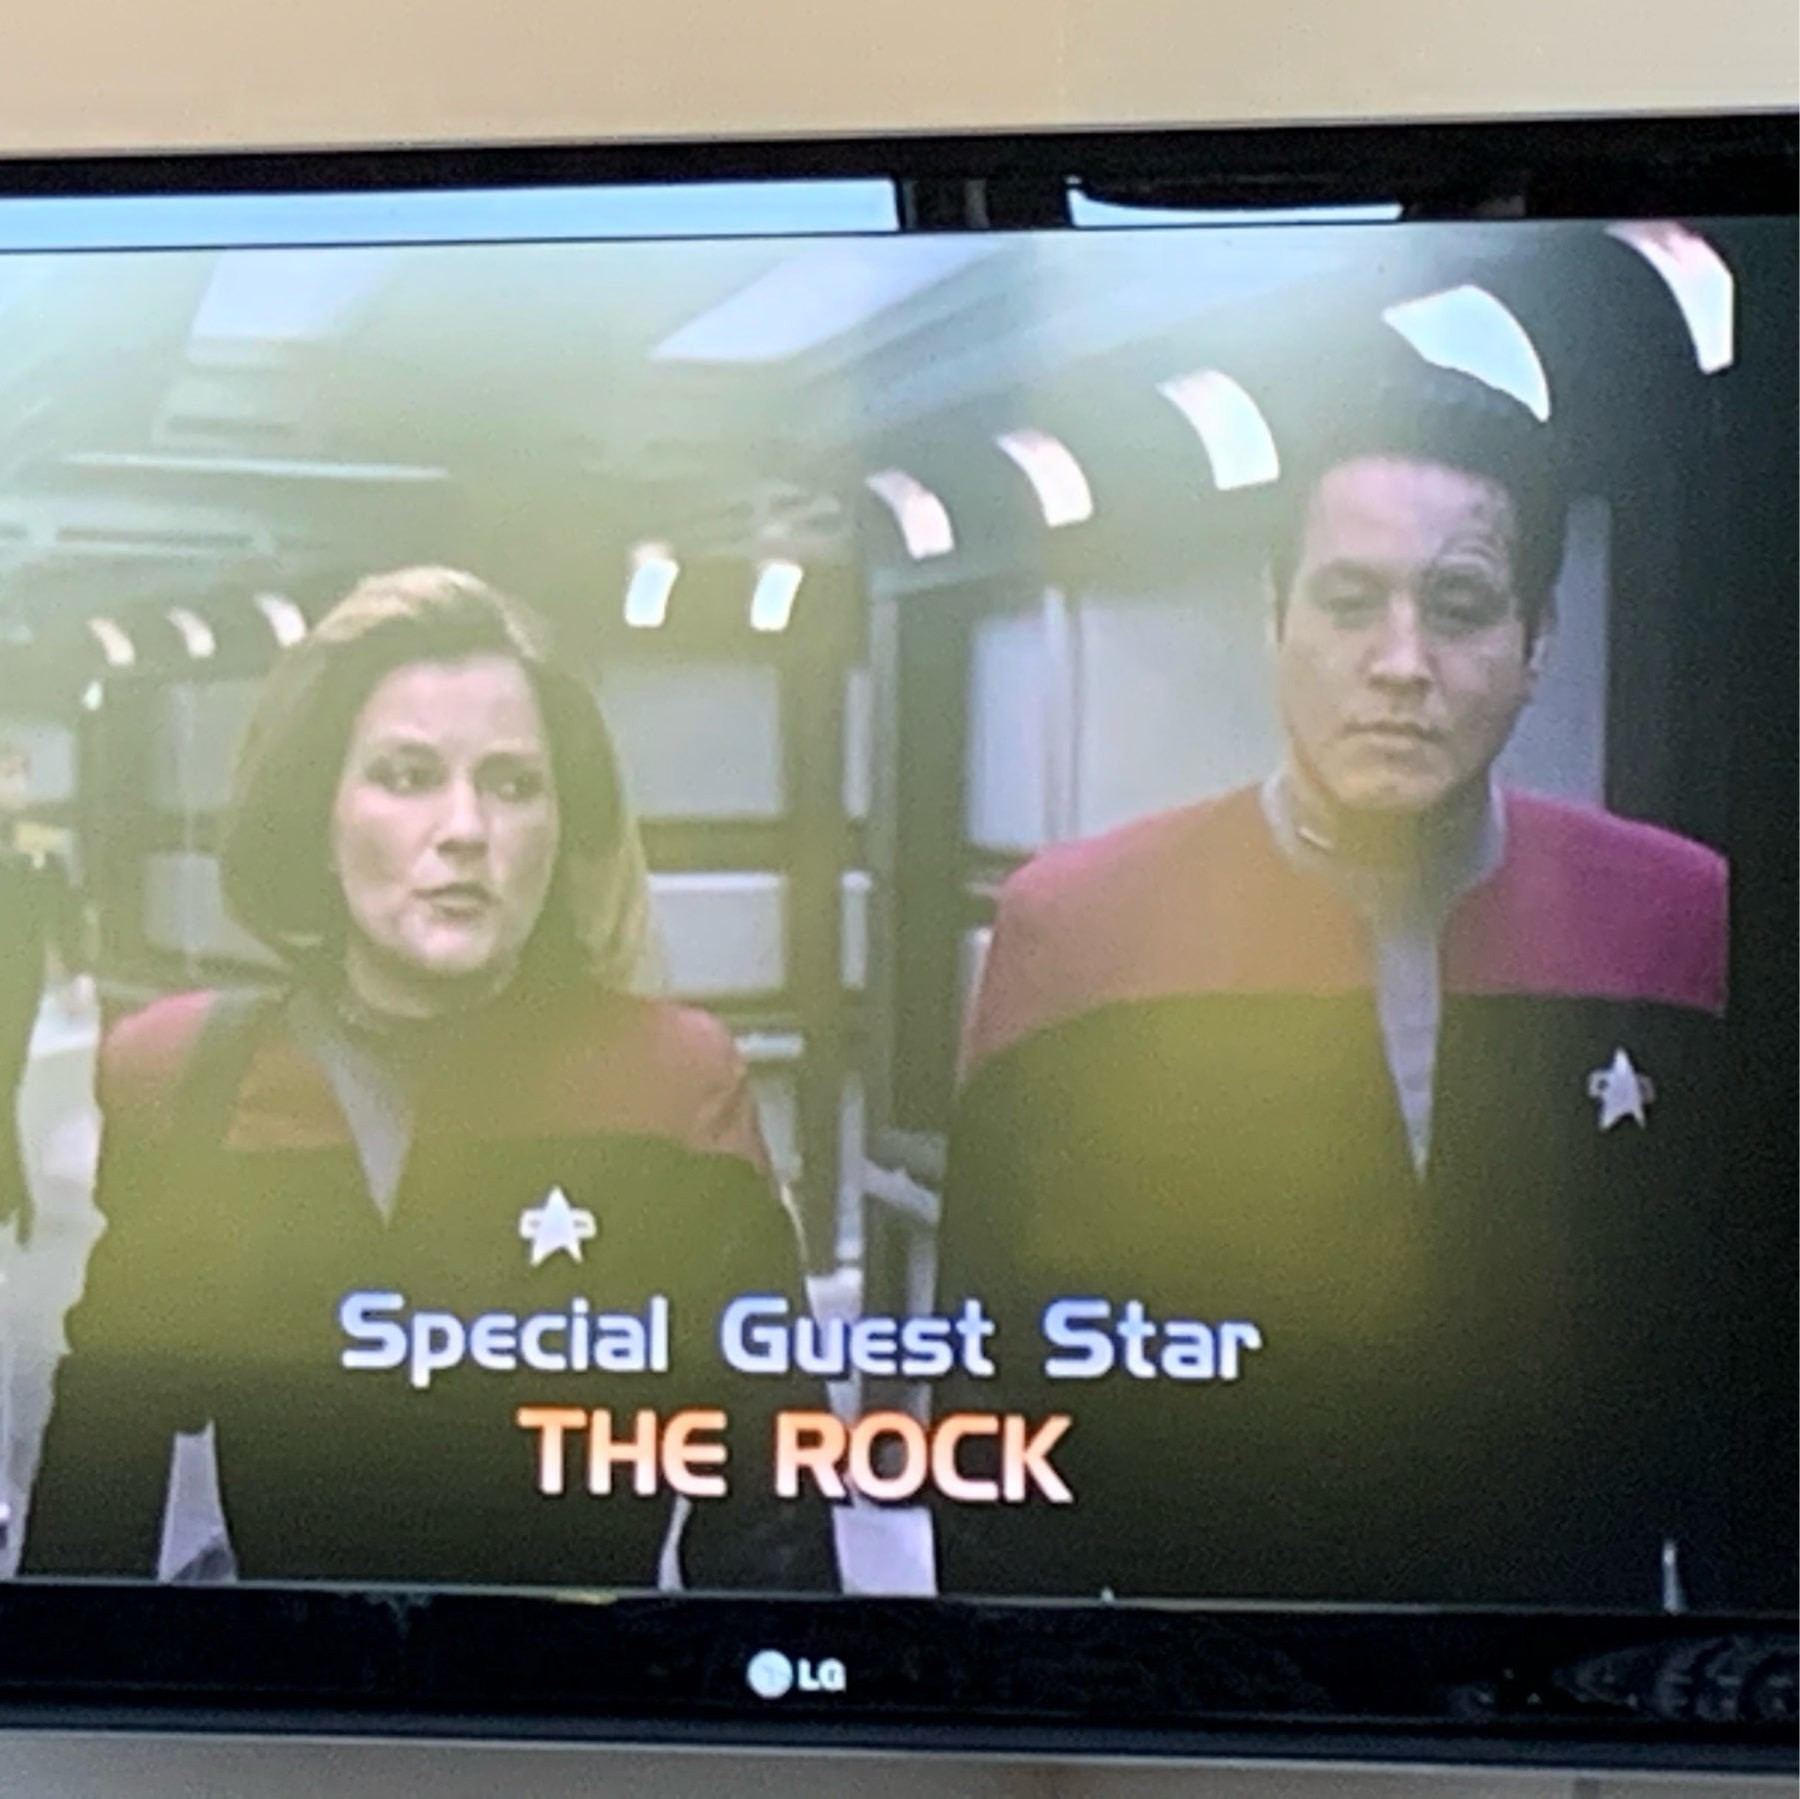 Star if a Star Trek Voyager episode with the opening credits saying Specail Guest Star The Rock